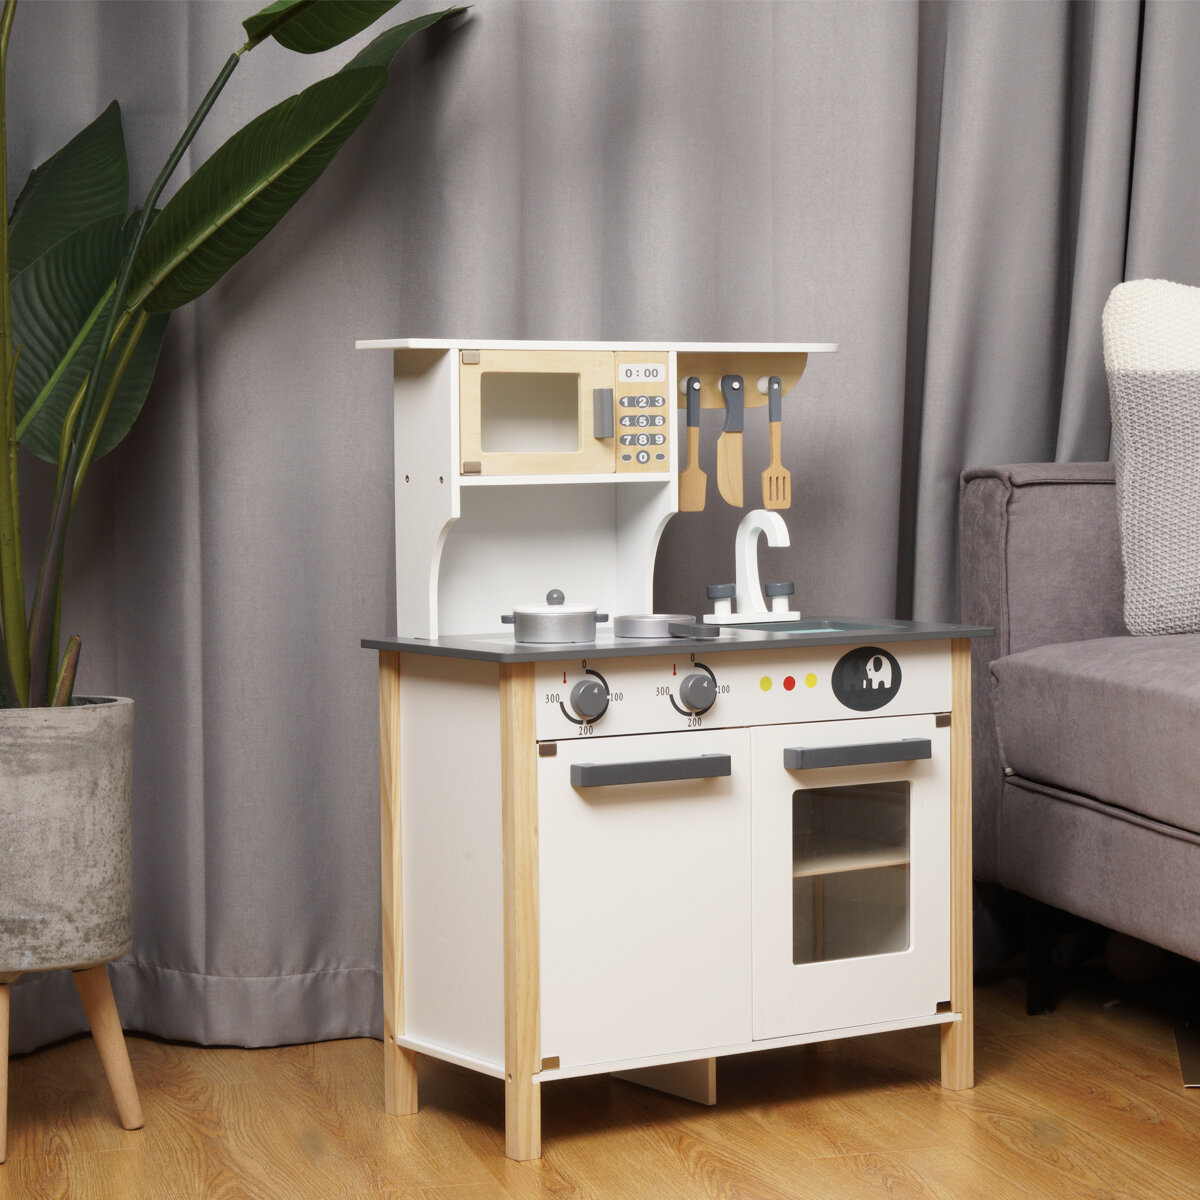 Zakicol Pretend Wooden Kitchen Playset For Kids And Children Gifts For New Year Christmas And Birthday White Wayfair